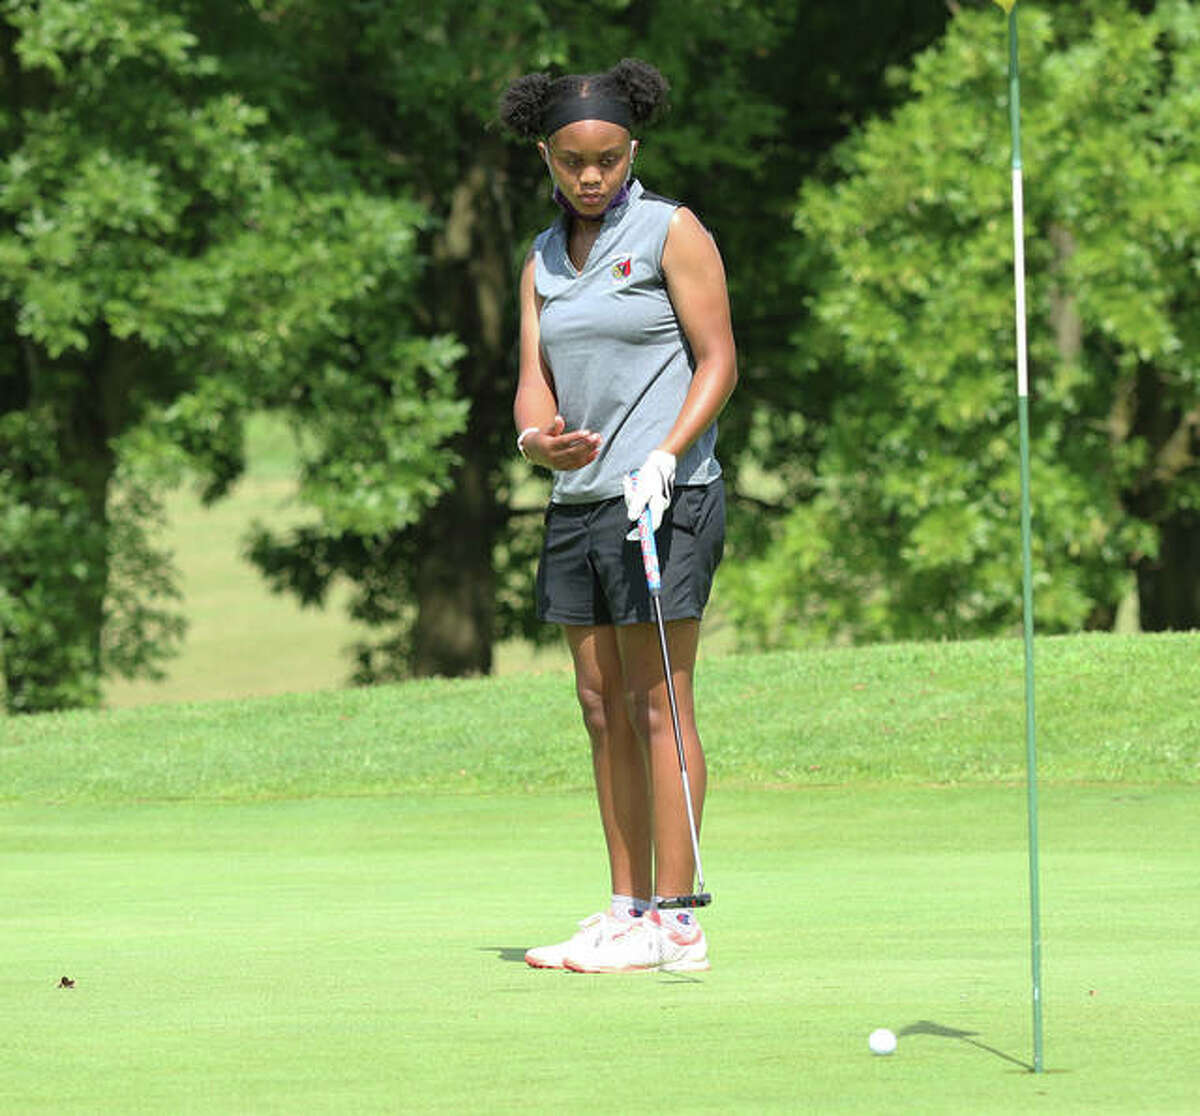 Alton freshman Na'ilah Simmons tries to wave her putt closer to the cup, but comes up short during the Alton Fall Kick-Off Scramble/Shamble on Saturday afternoon at Rolling Hills golf course in Godfrey.